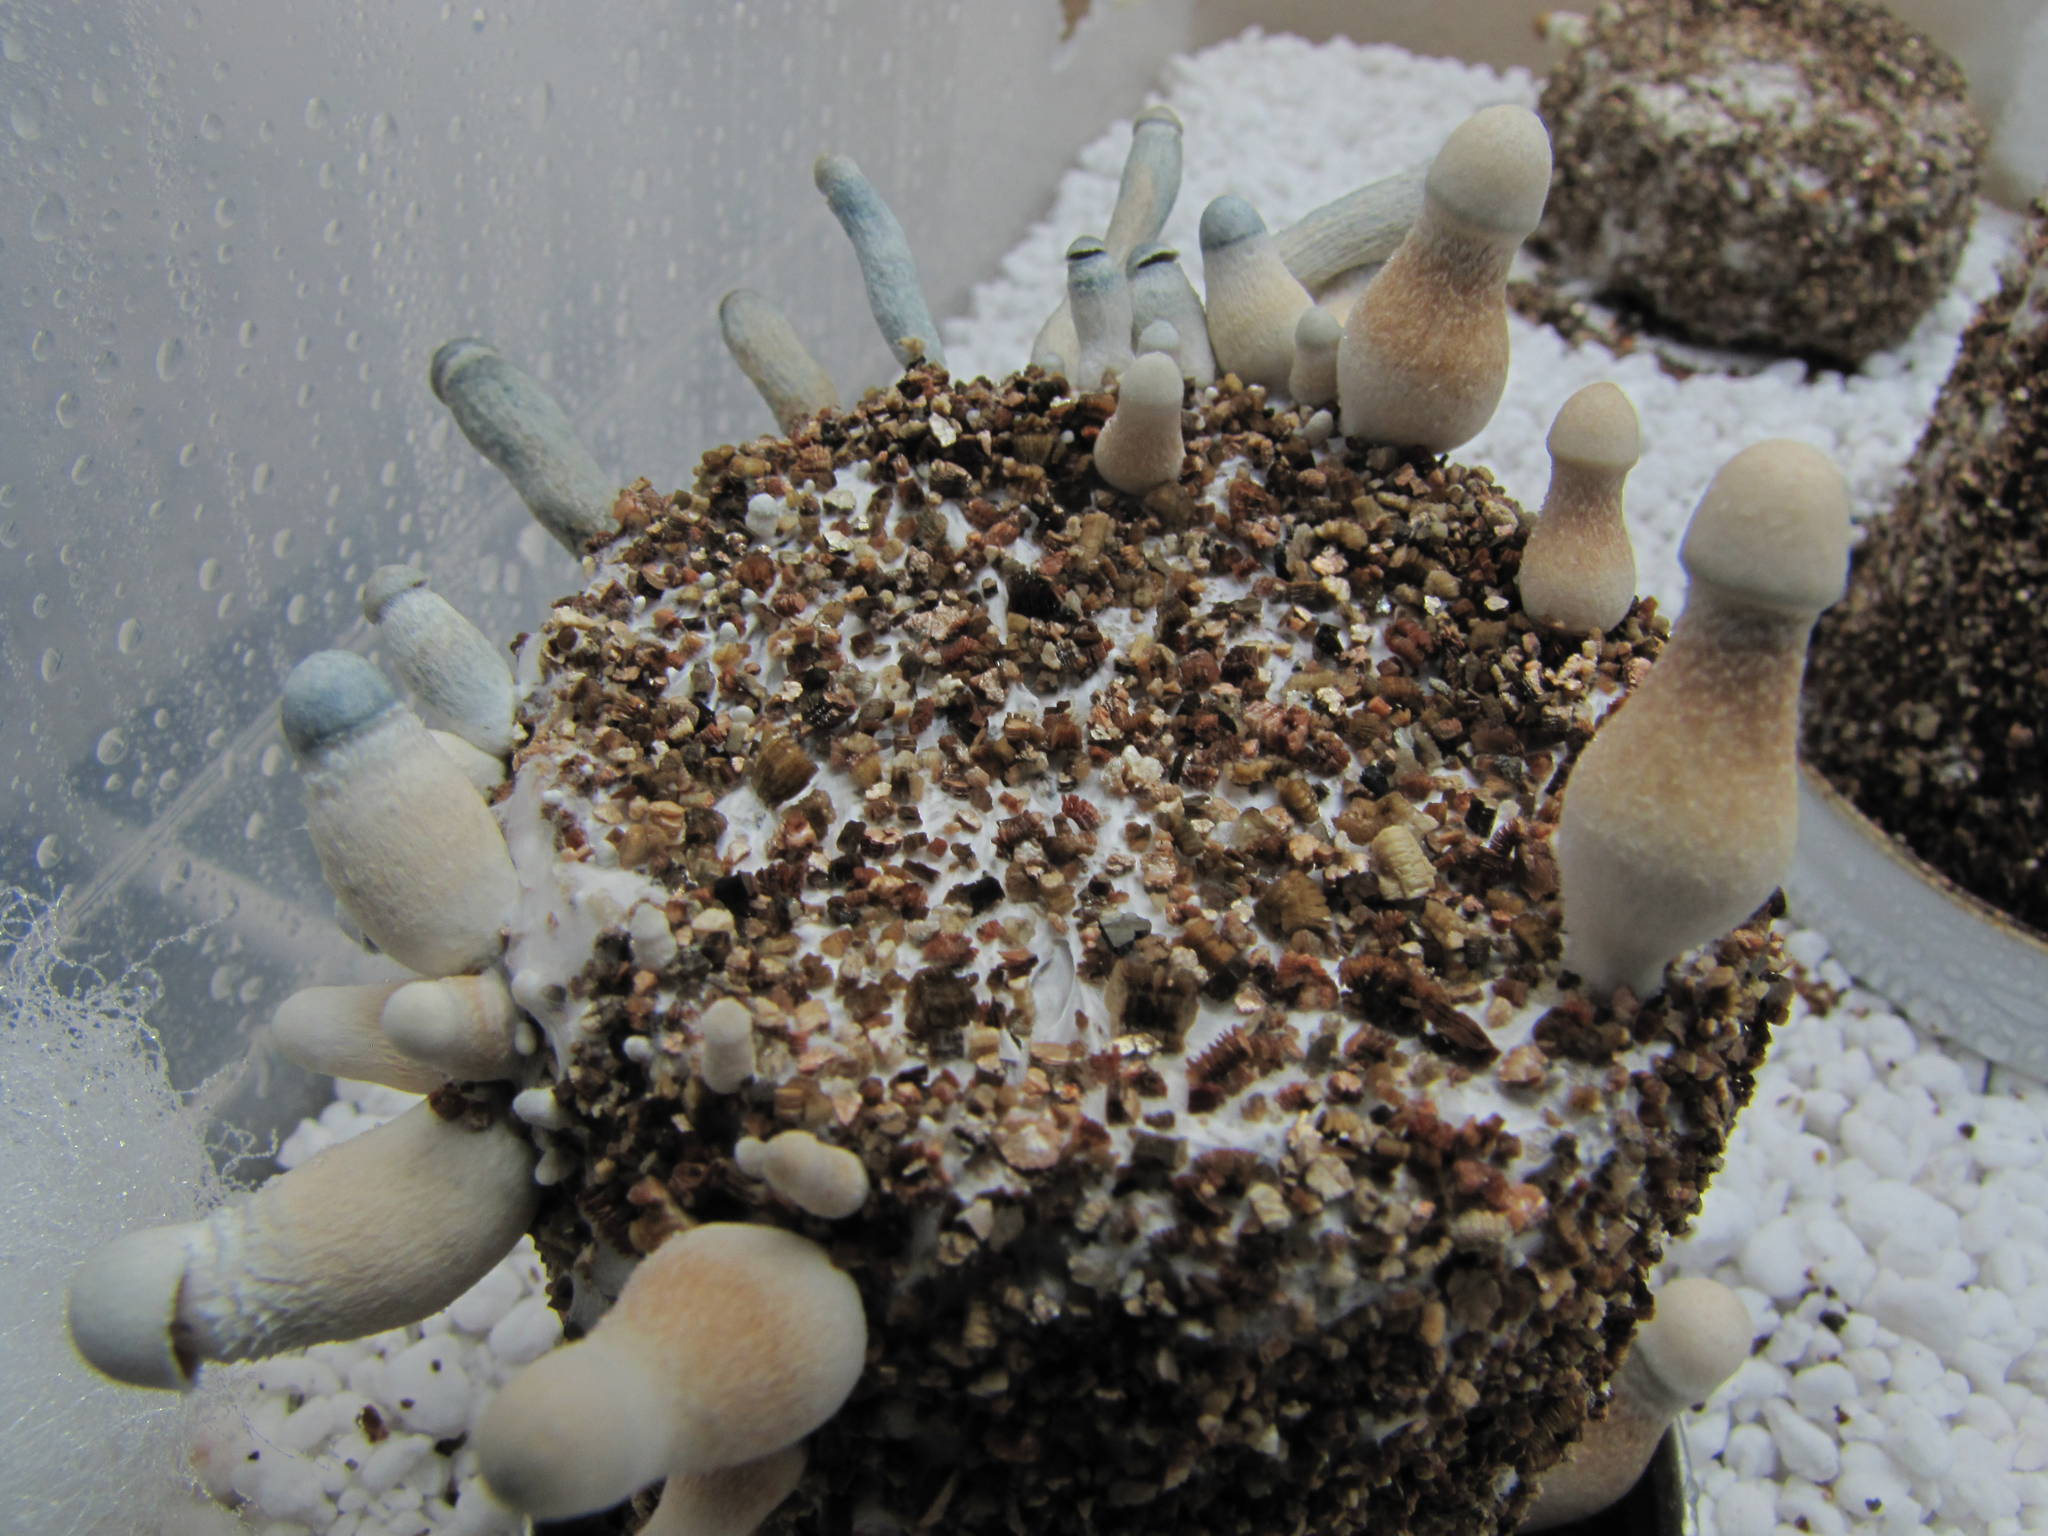 My Yummy Albino A With Sexy Pics Mushroom Cultivation